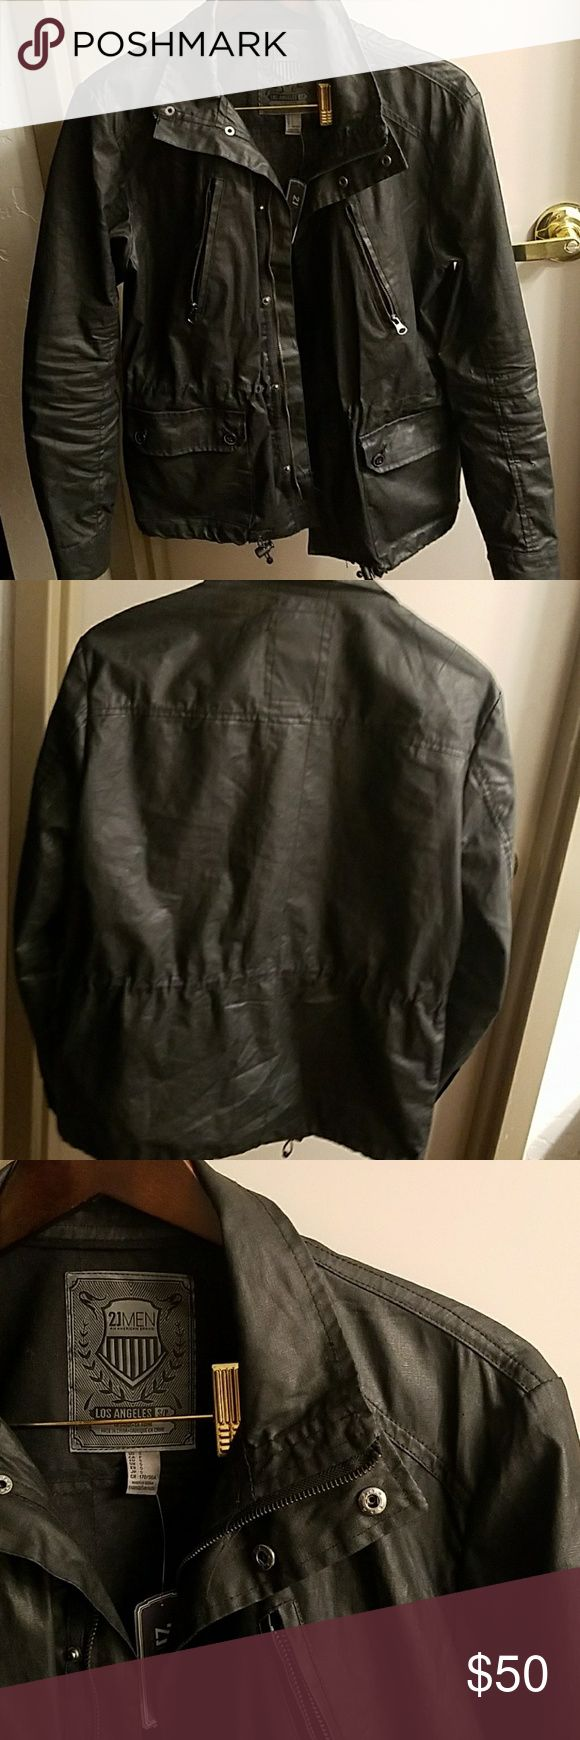 Waxed Outerwear Jacket Edgy Waxed jacket from 21 men's. Missing the zipper hood. Otherwise in great condition. With tags.  Says Small, but fits like a medium. 21men Jackets & Coats Military & Field